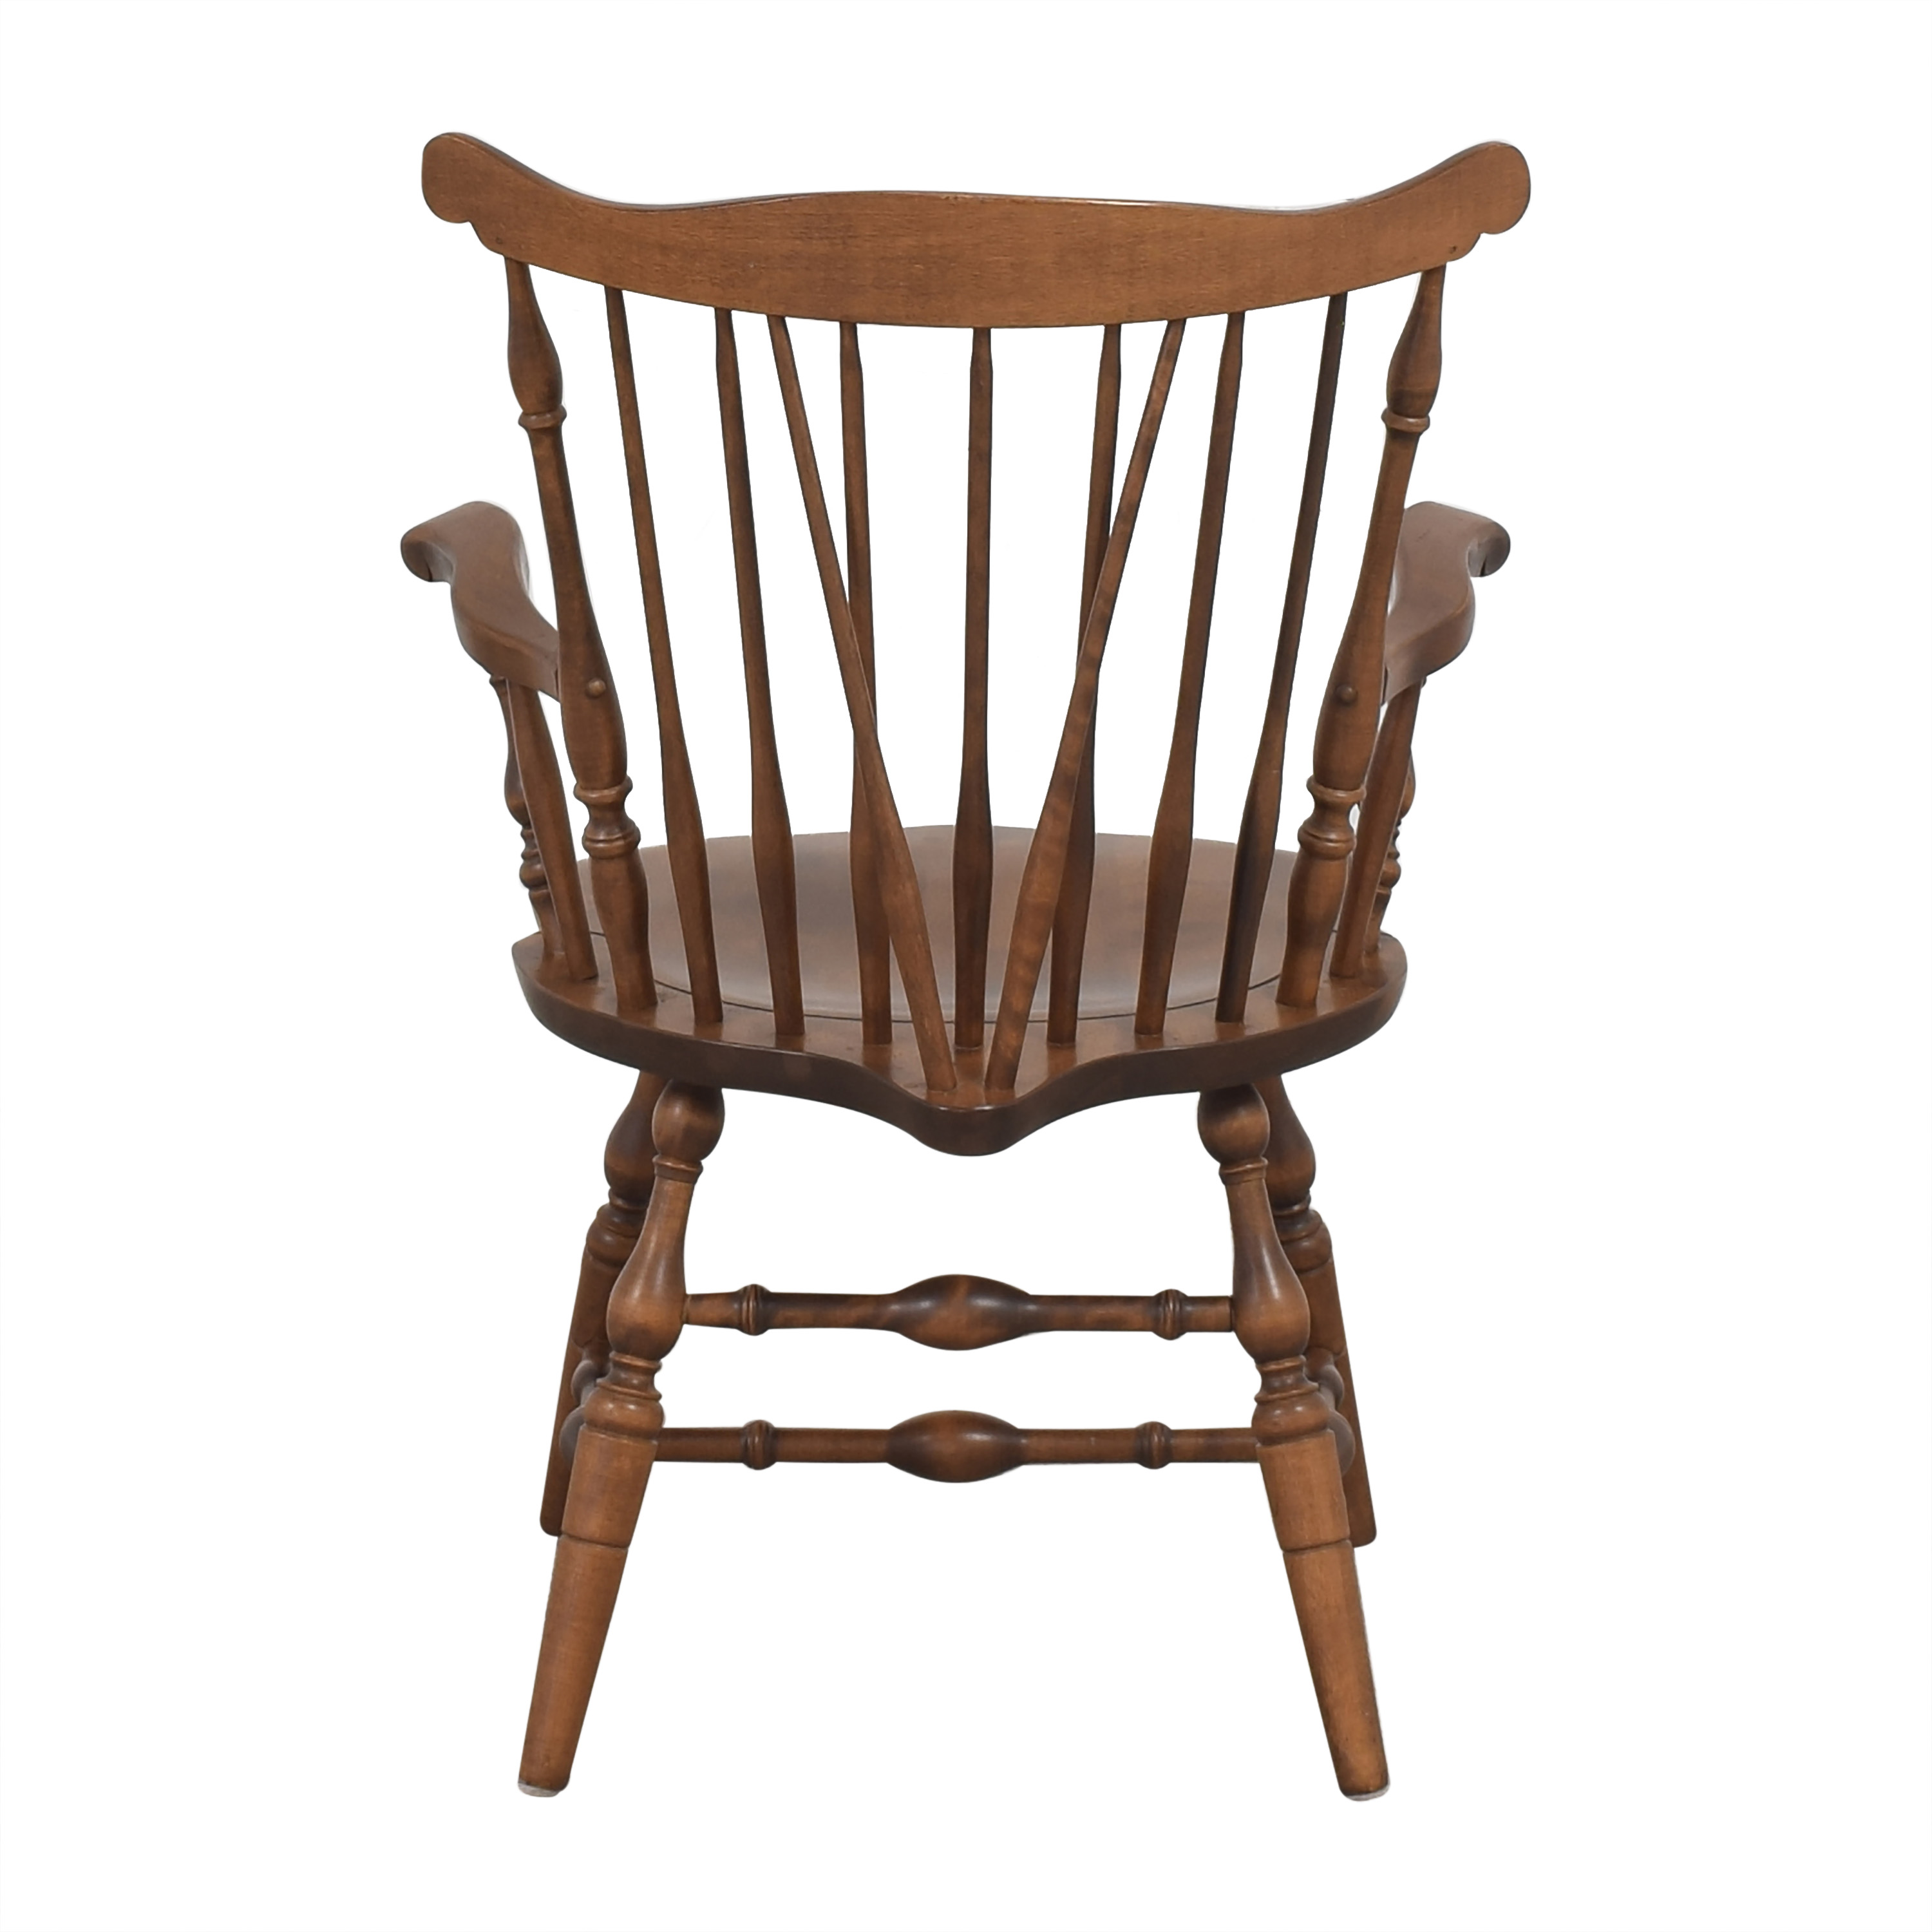 S. Bent & Bros S. Bent & Bros Brace Back Windsor Dining Arm Chairs dimensions